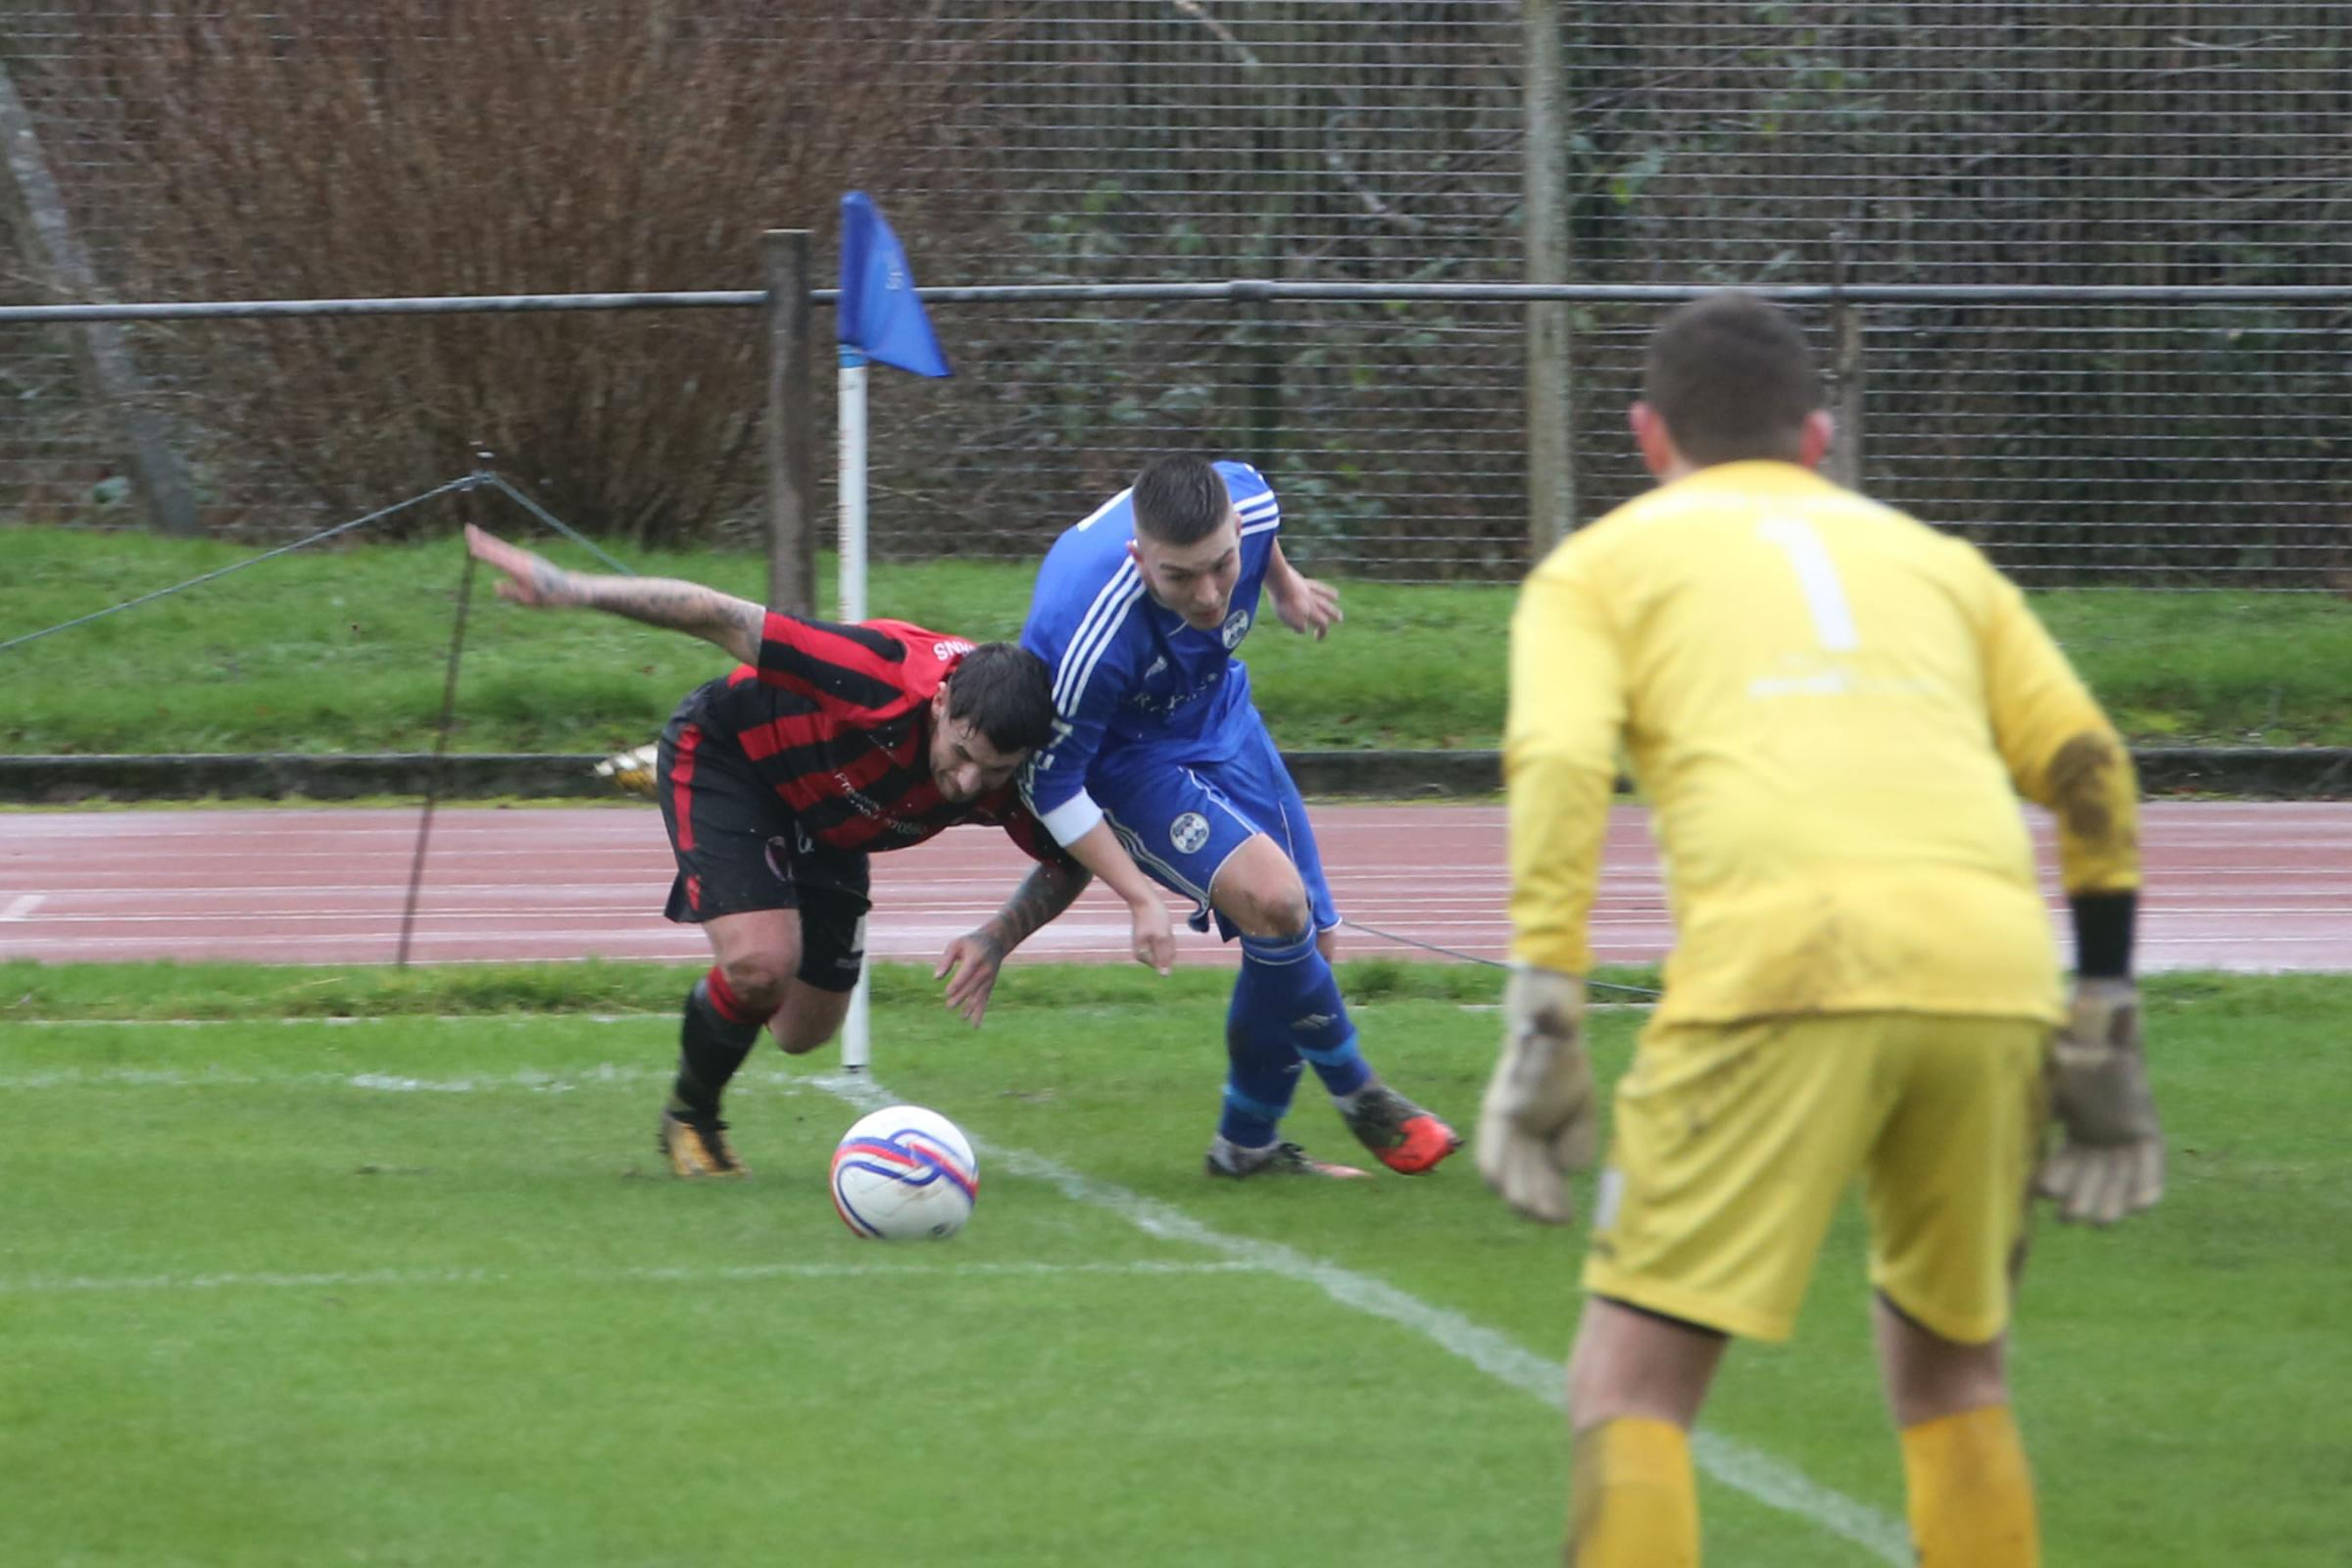 EASY WIN: Whitletts Vics were in cruise control